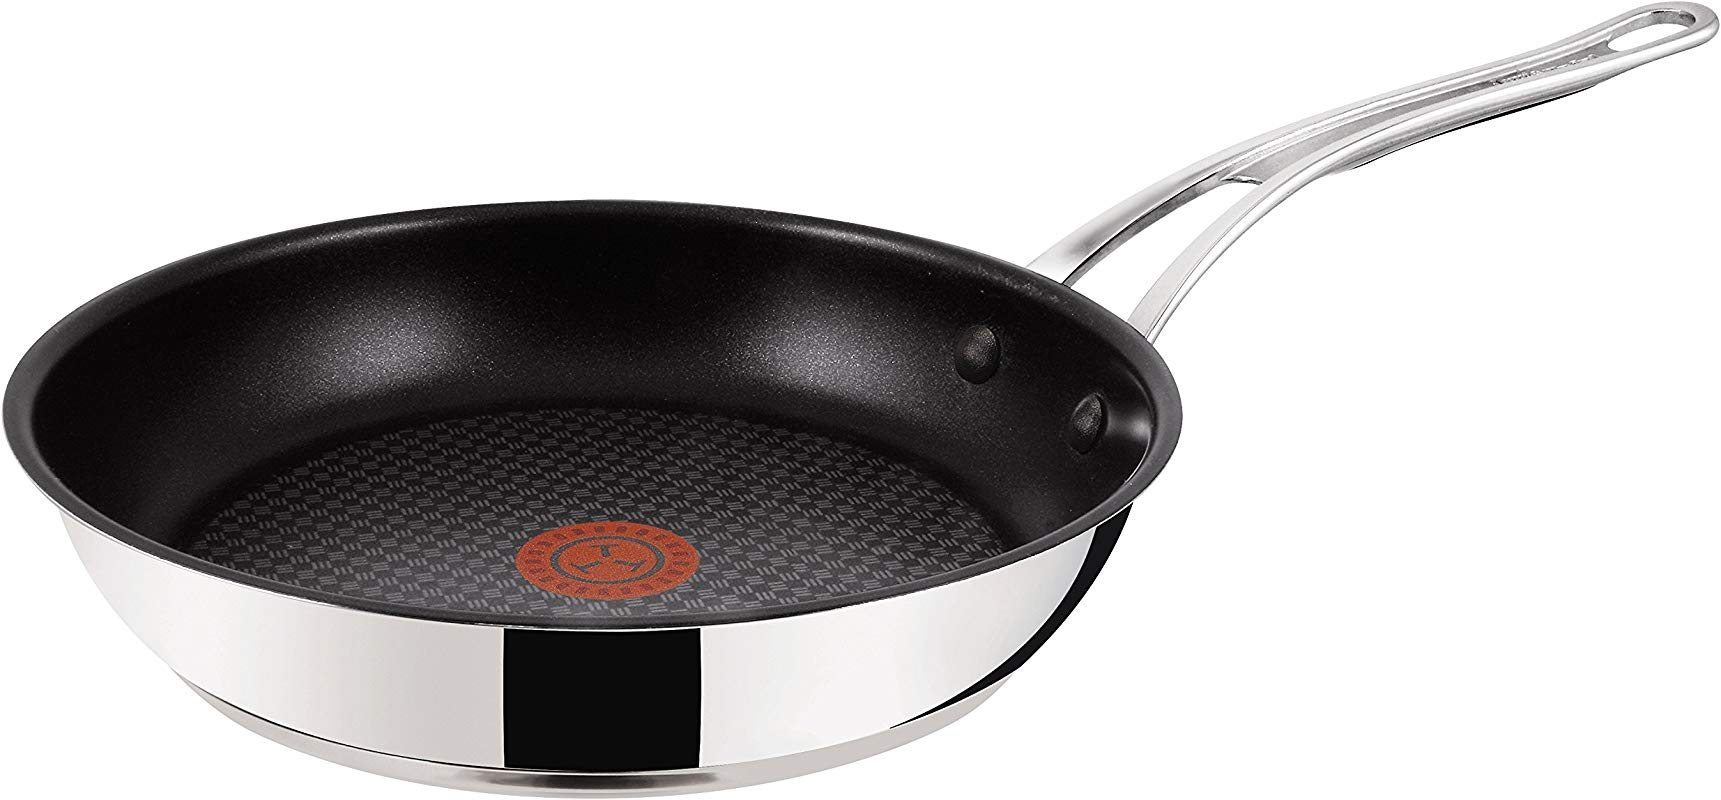 Tefal Jamie Oliver Premium Series Non Stick Frypan 24cm Stainless Steel